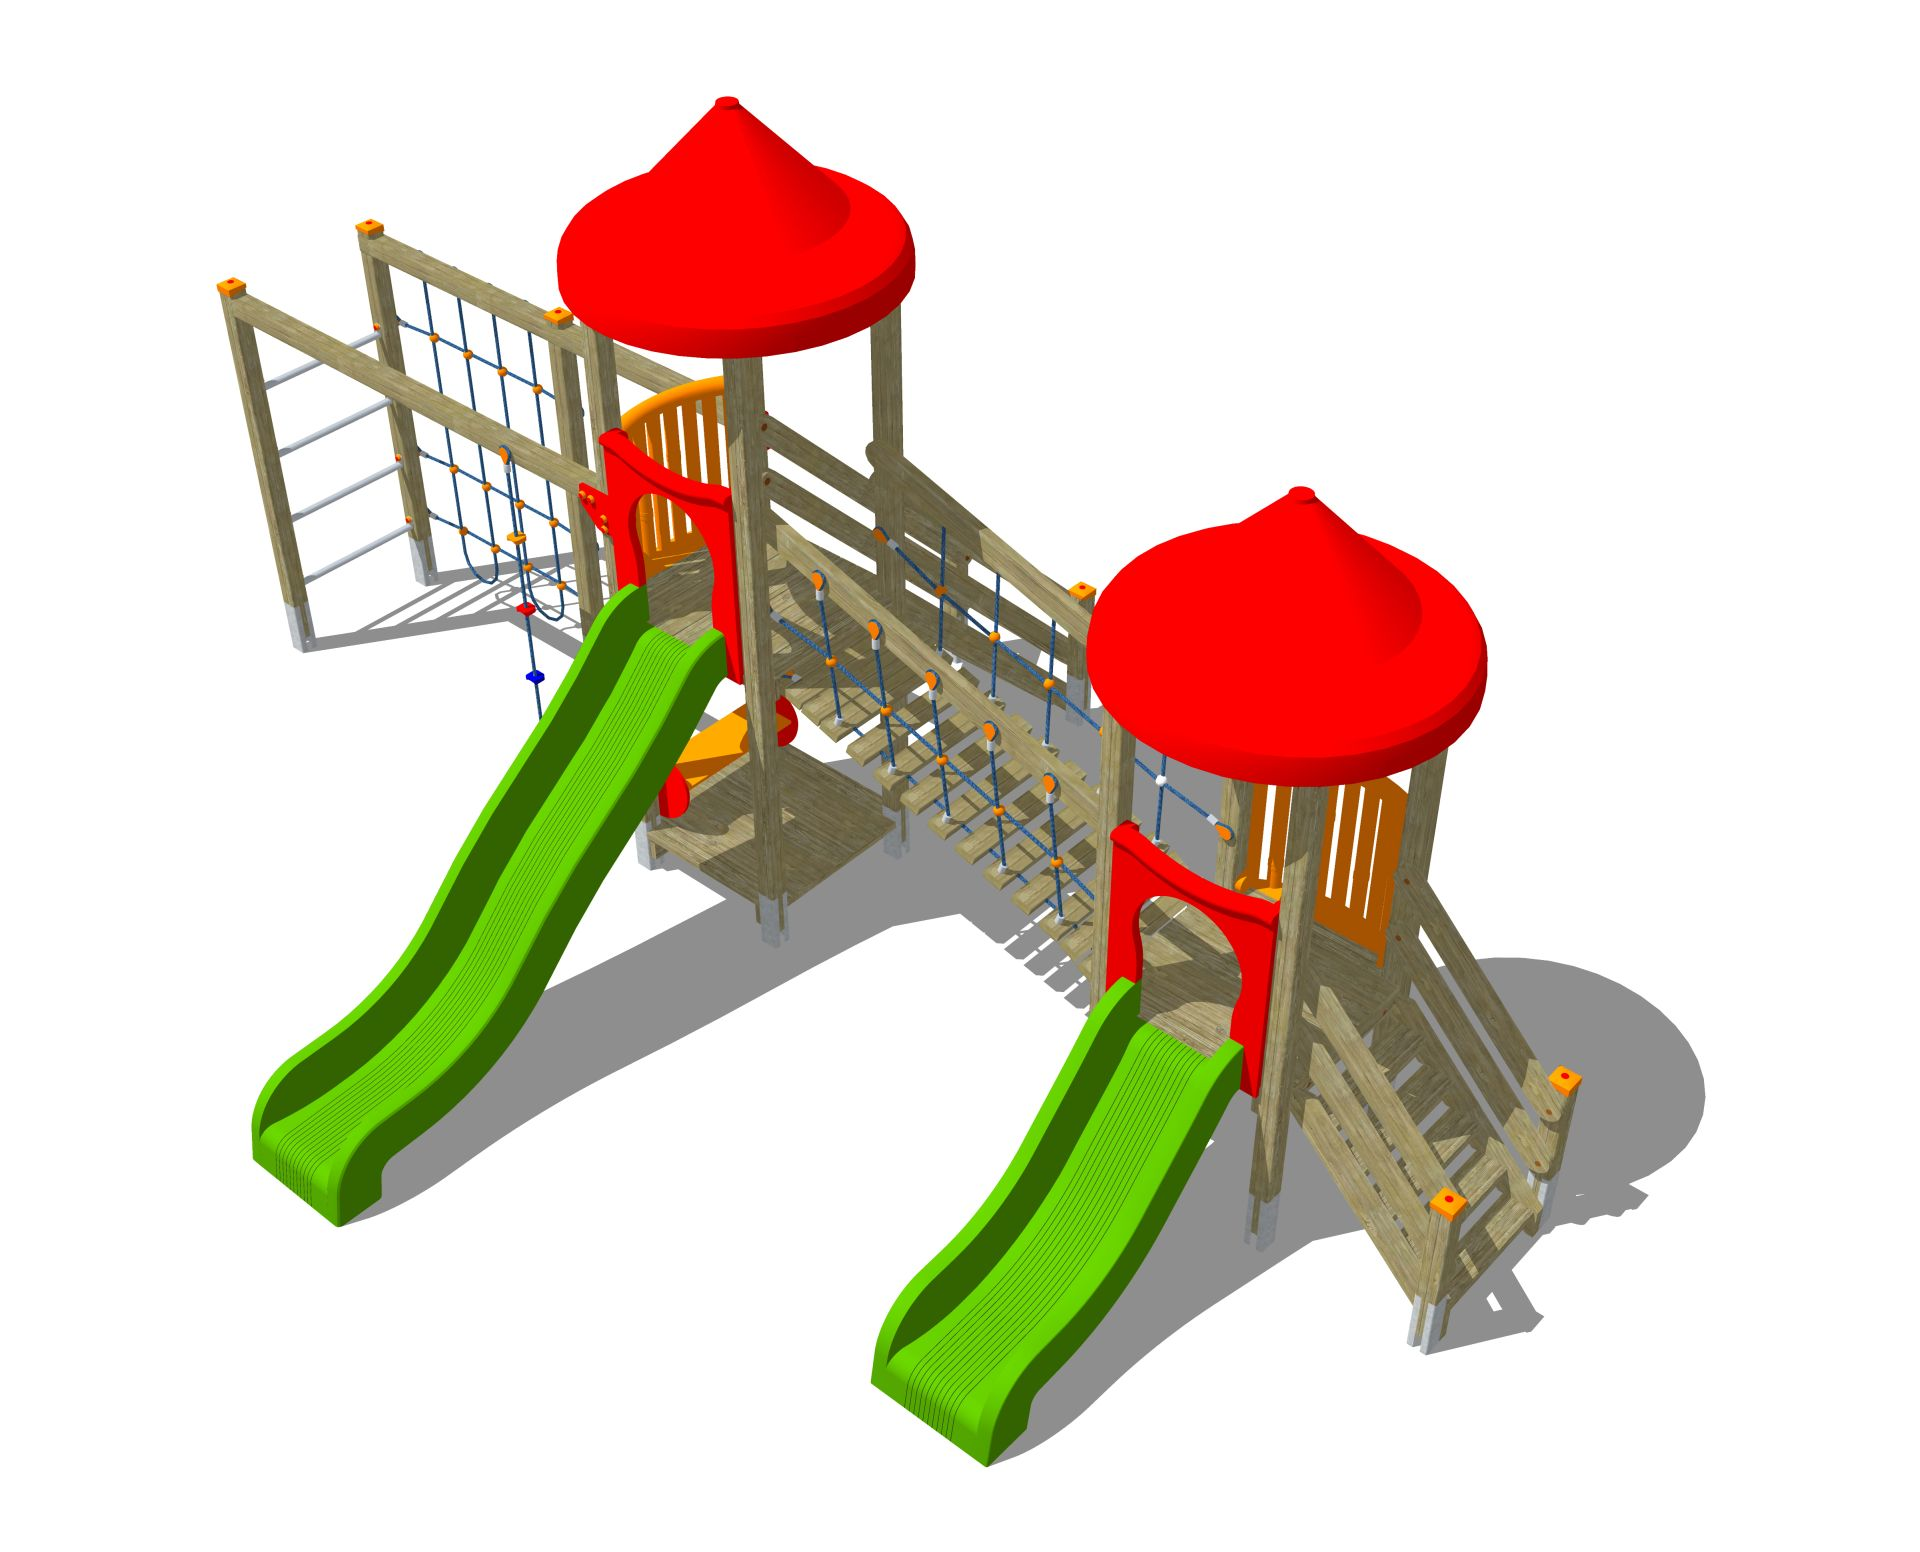 Holzhof ALADIN Aladin 2 towers with stairway h 84 + 144, slides h 84 + 144 + bridge + rope wall climber